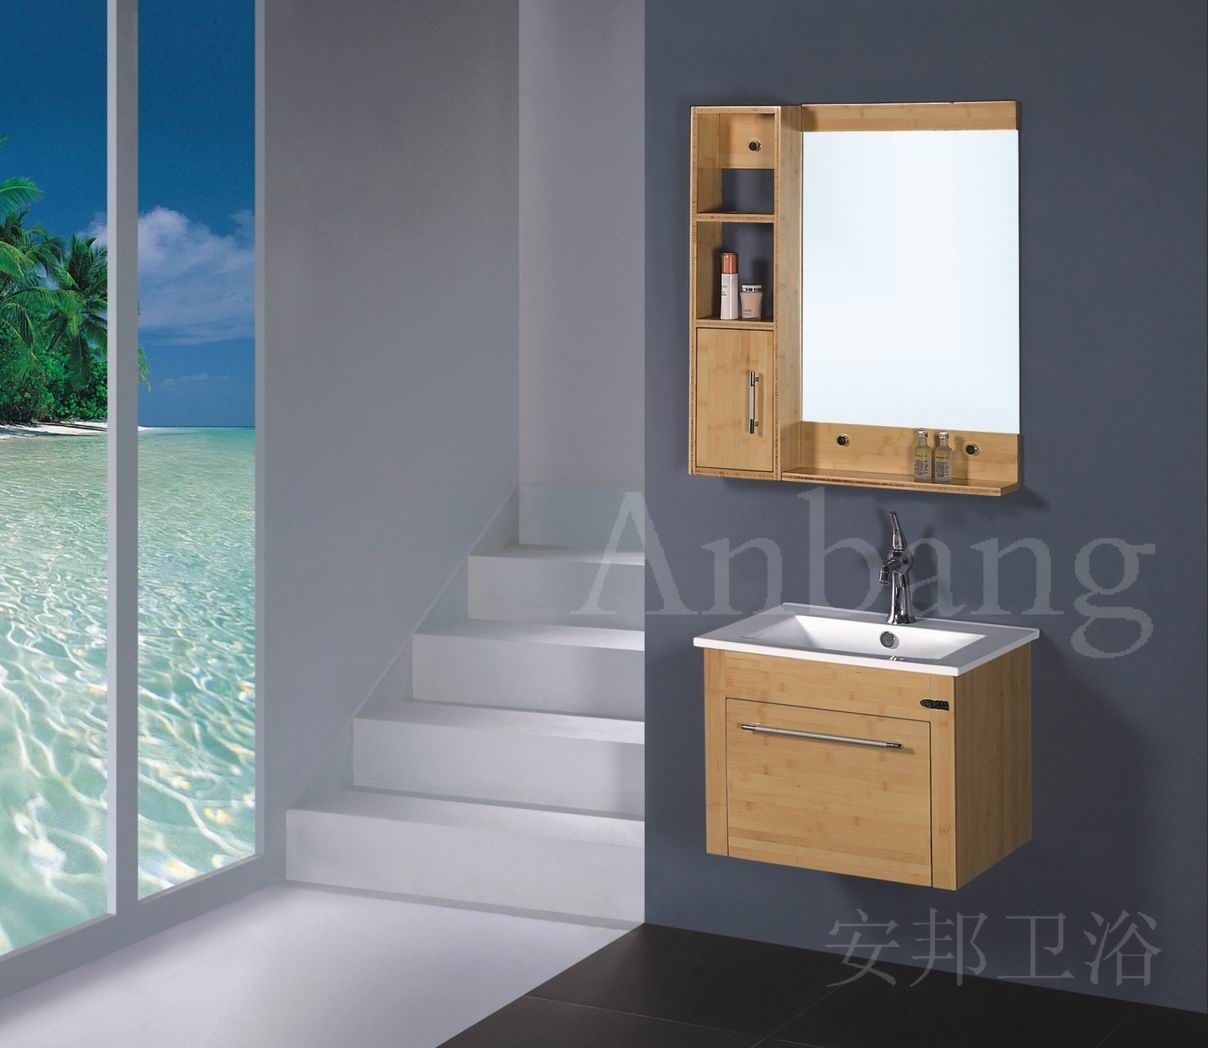 Bamboo Bathroom Furniture With Fantastic Images In Ireland